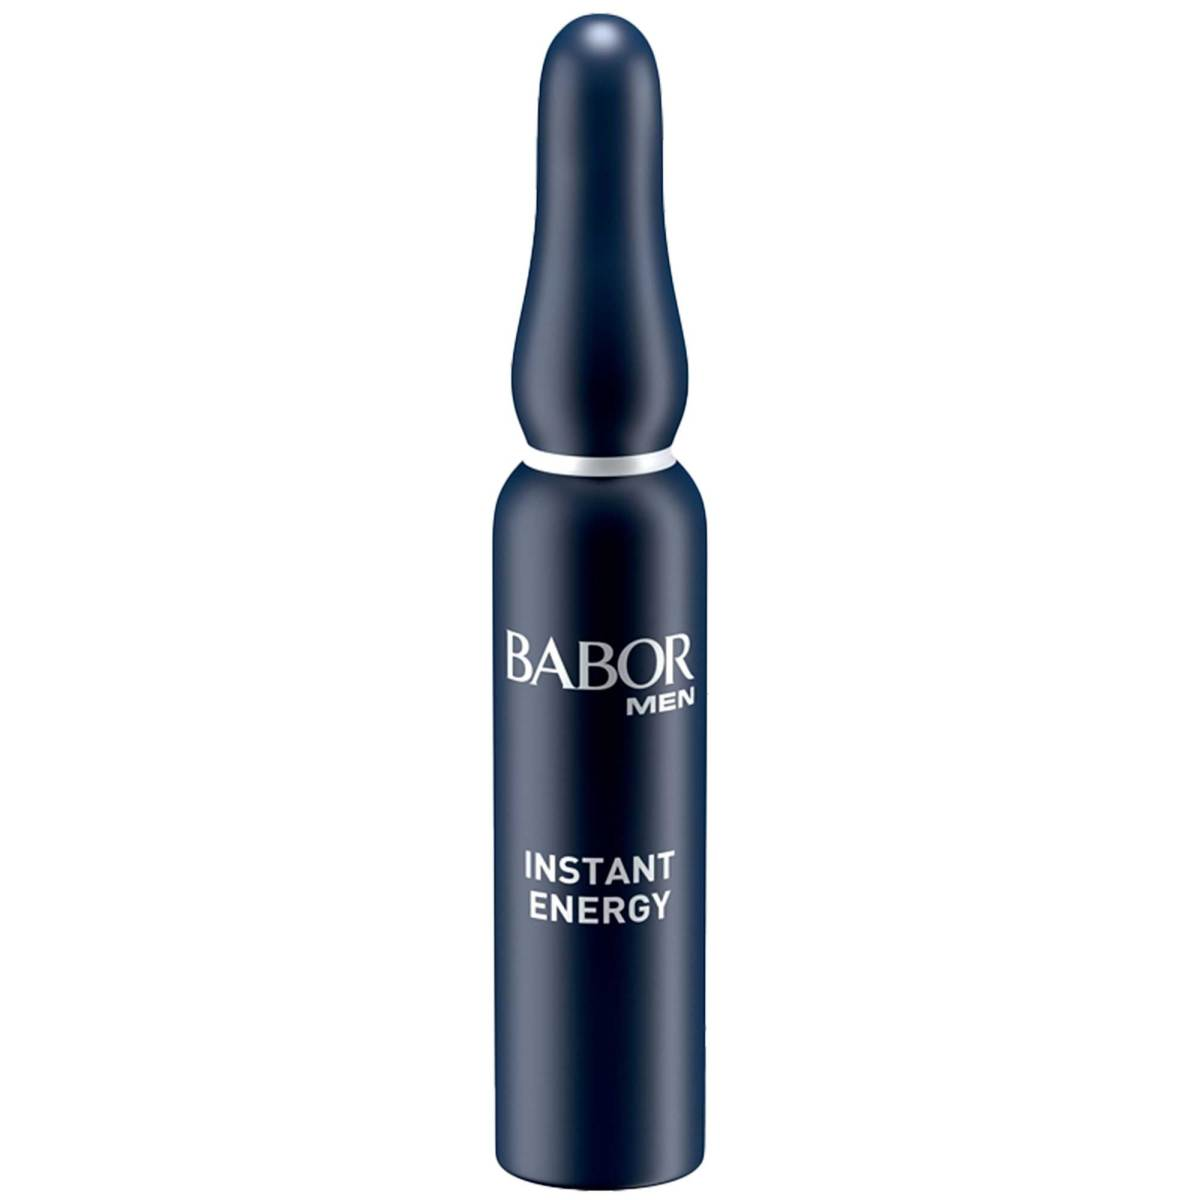 babor_men_instant_energy_ampoule